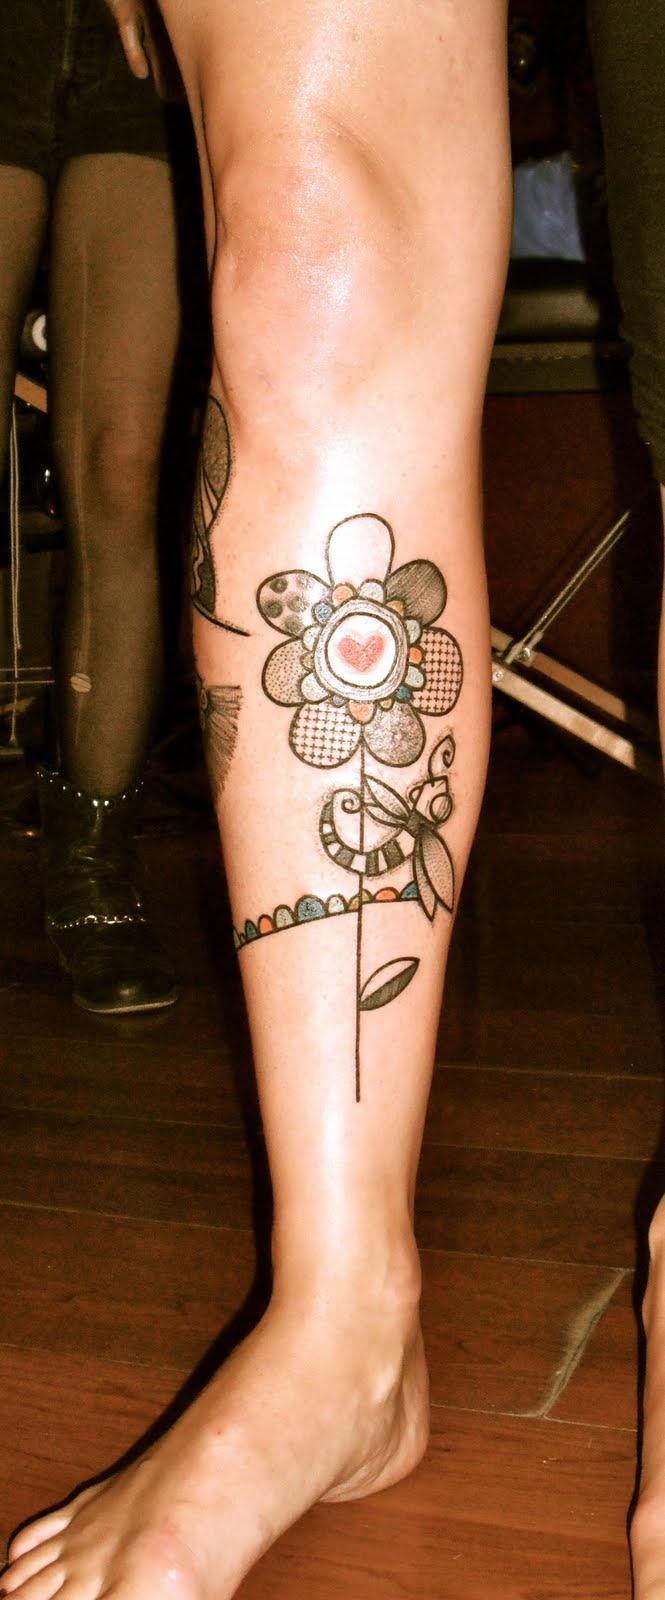 Tattoo by Noon